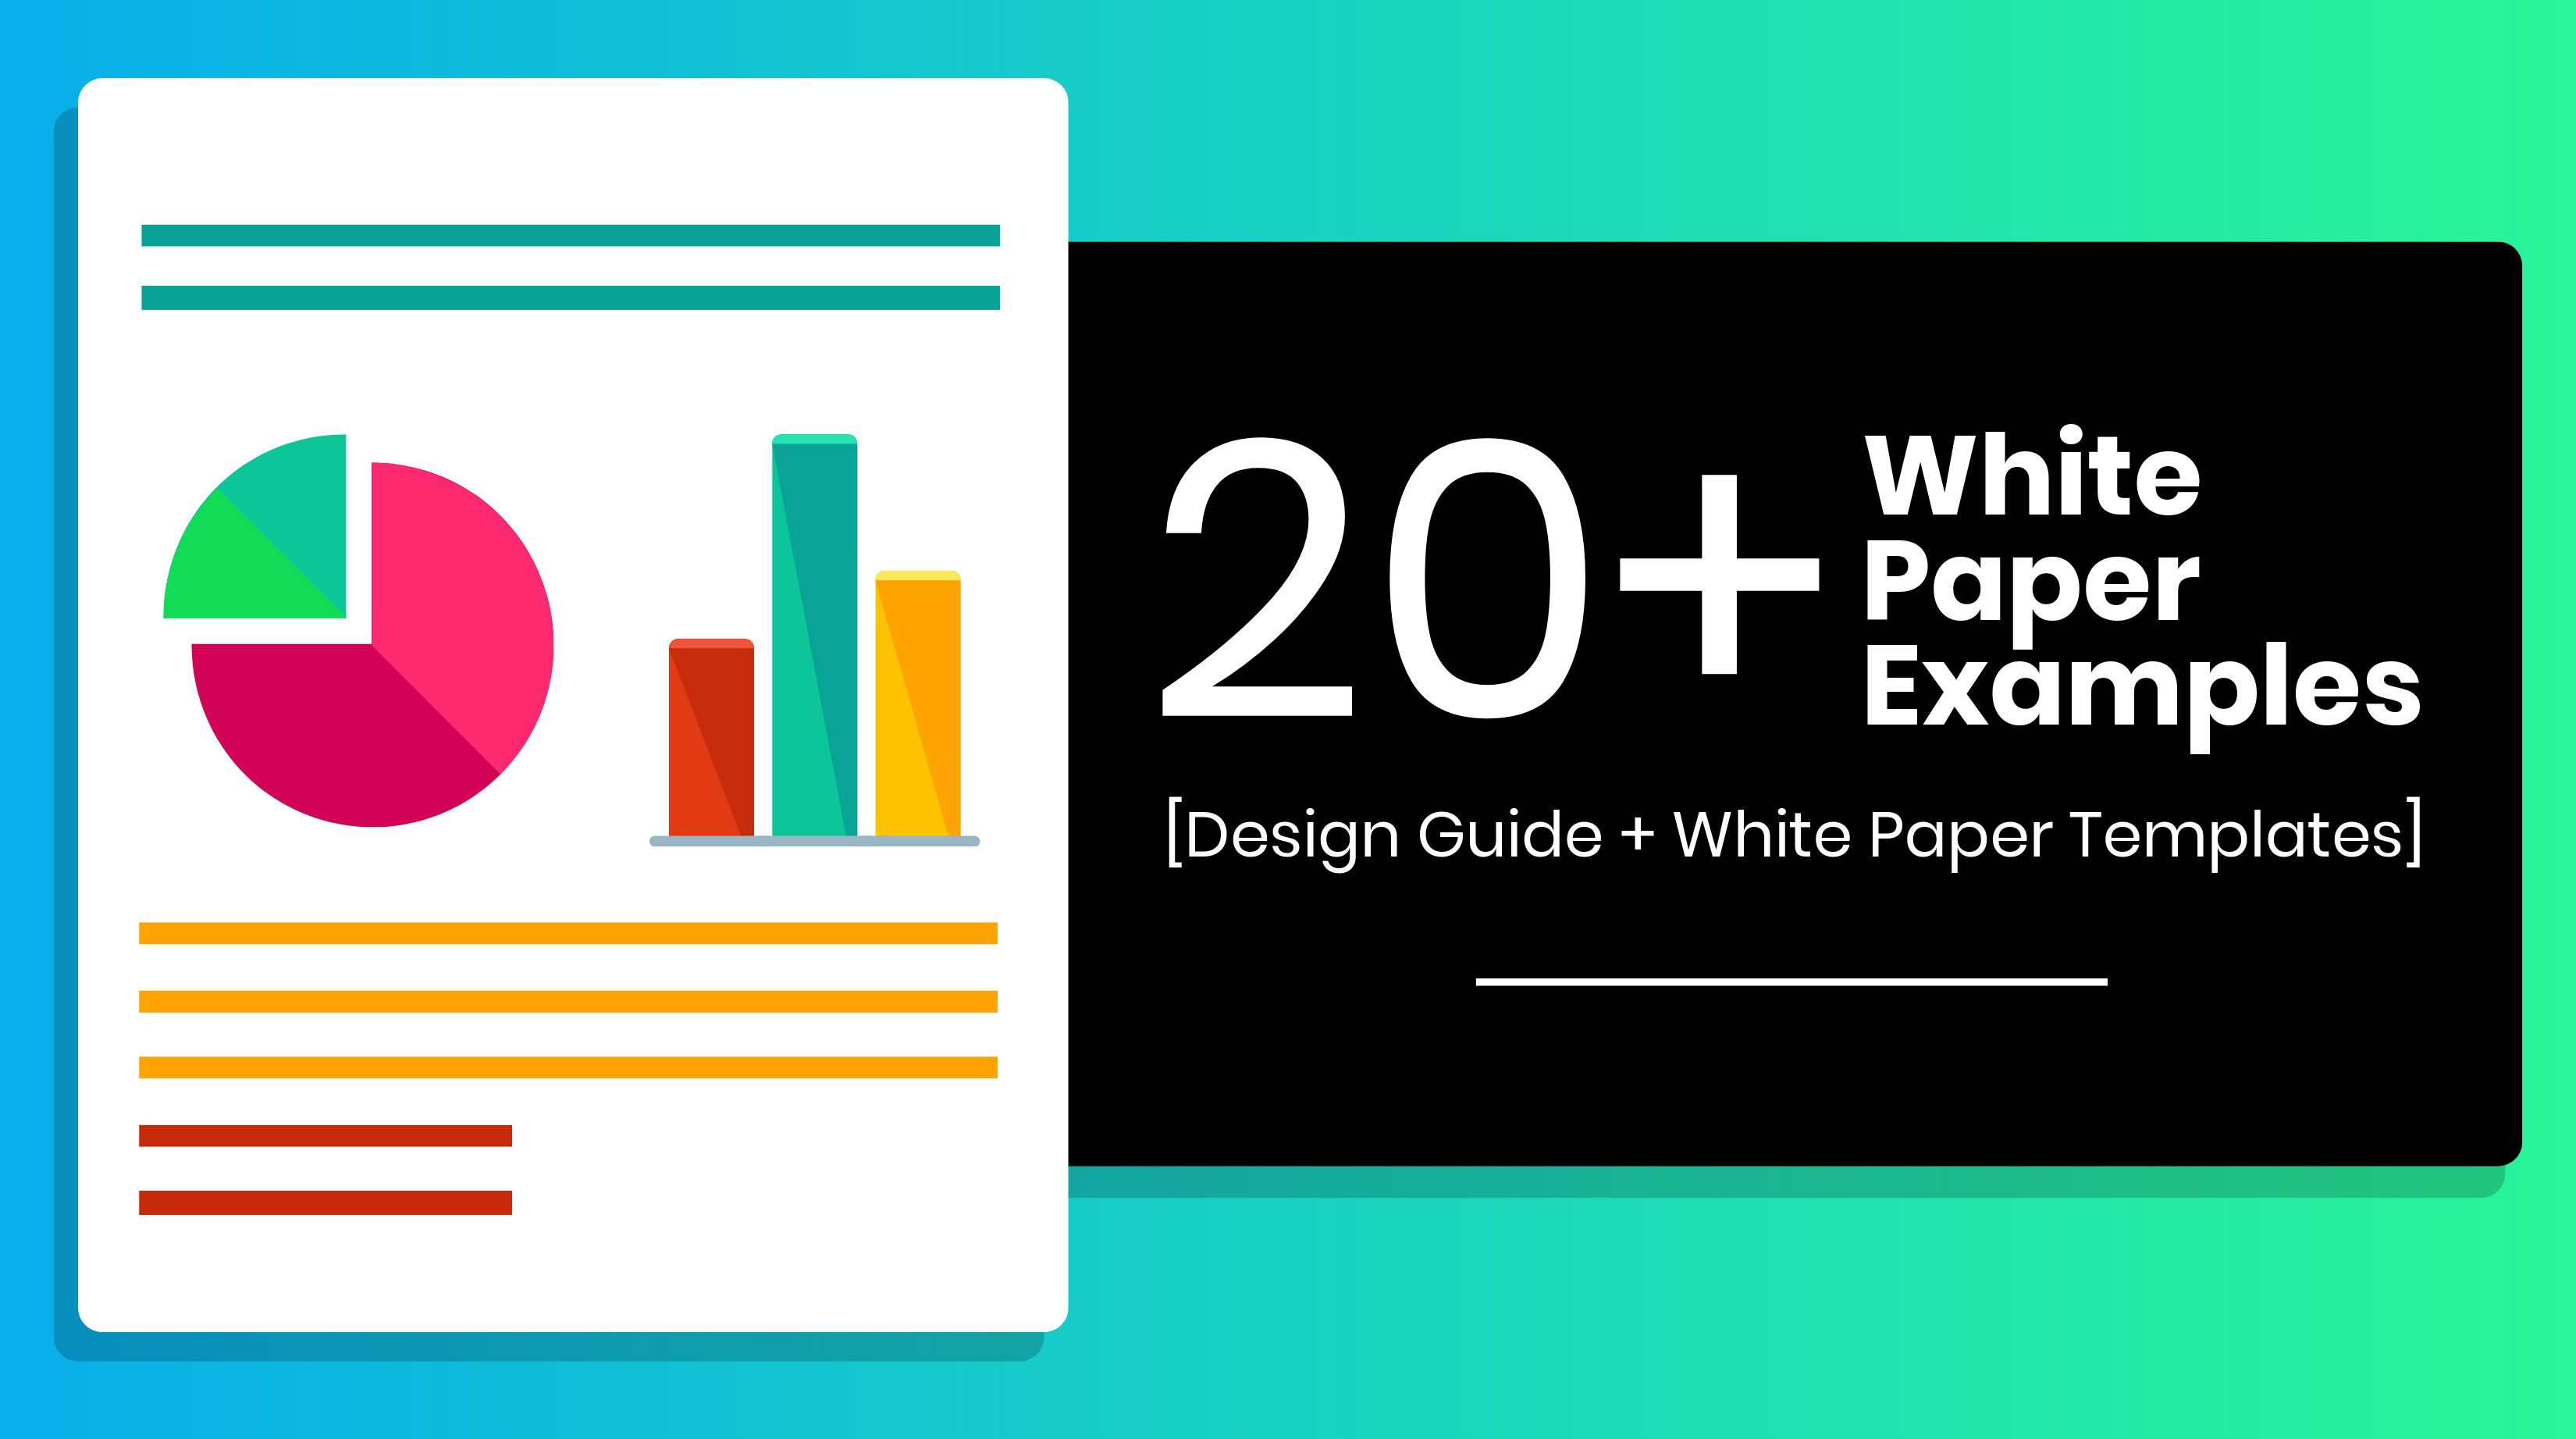 002 Simple Technical White Paper Template High Def  Word Doc Free Download 2013Full